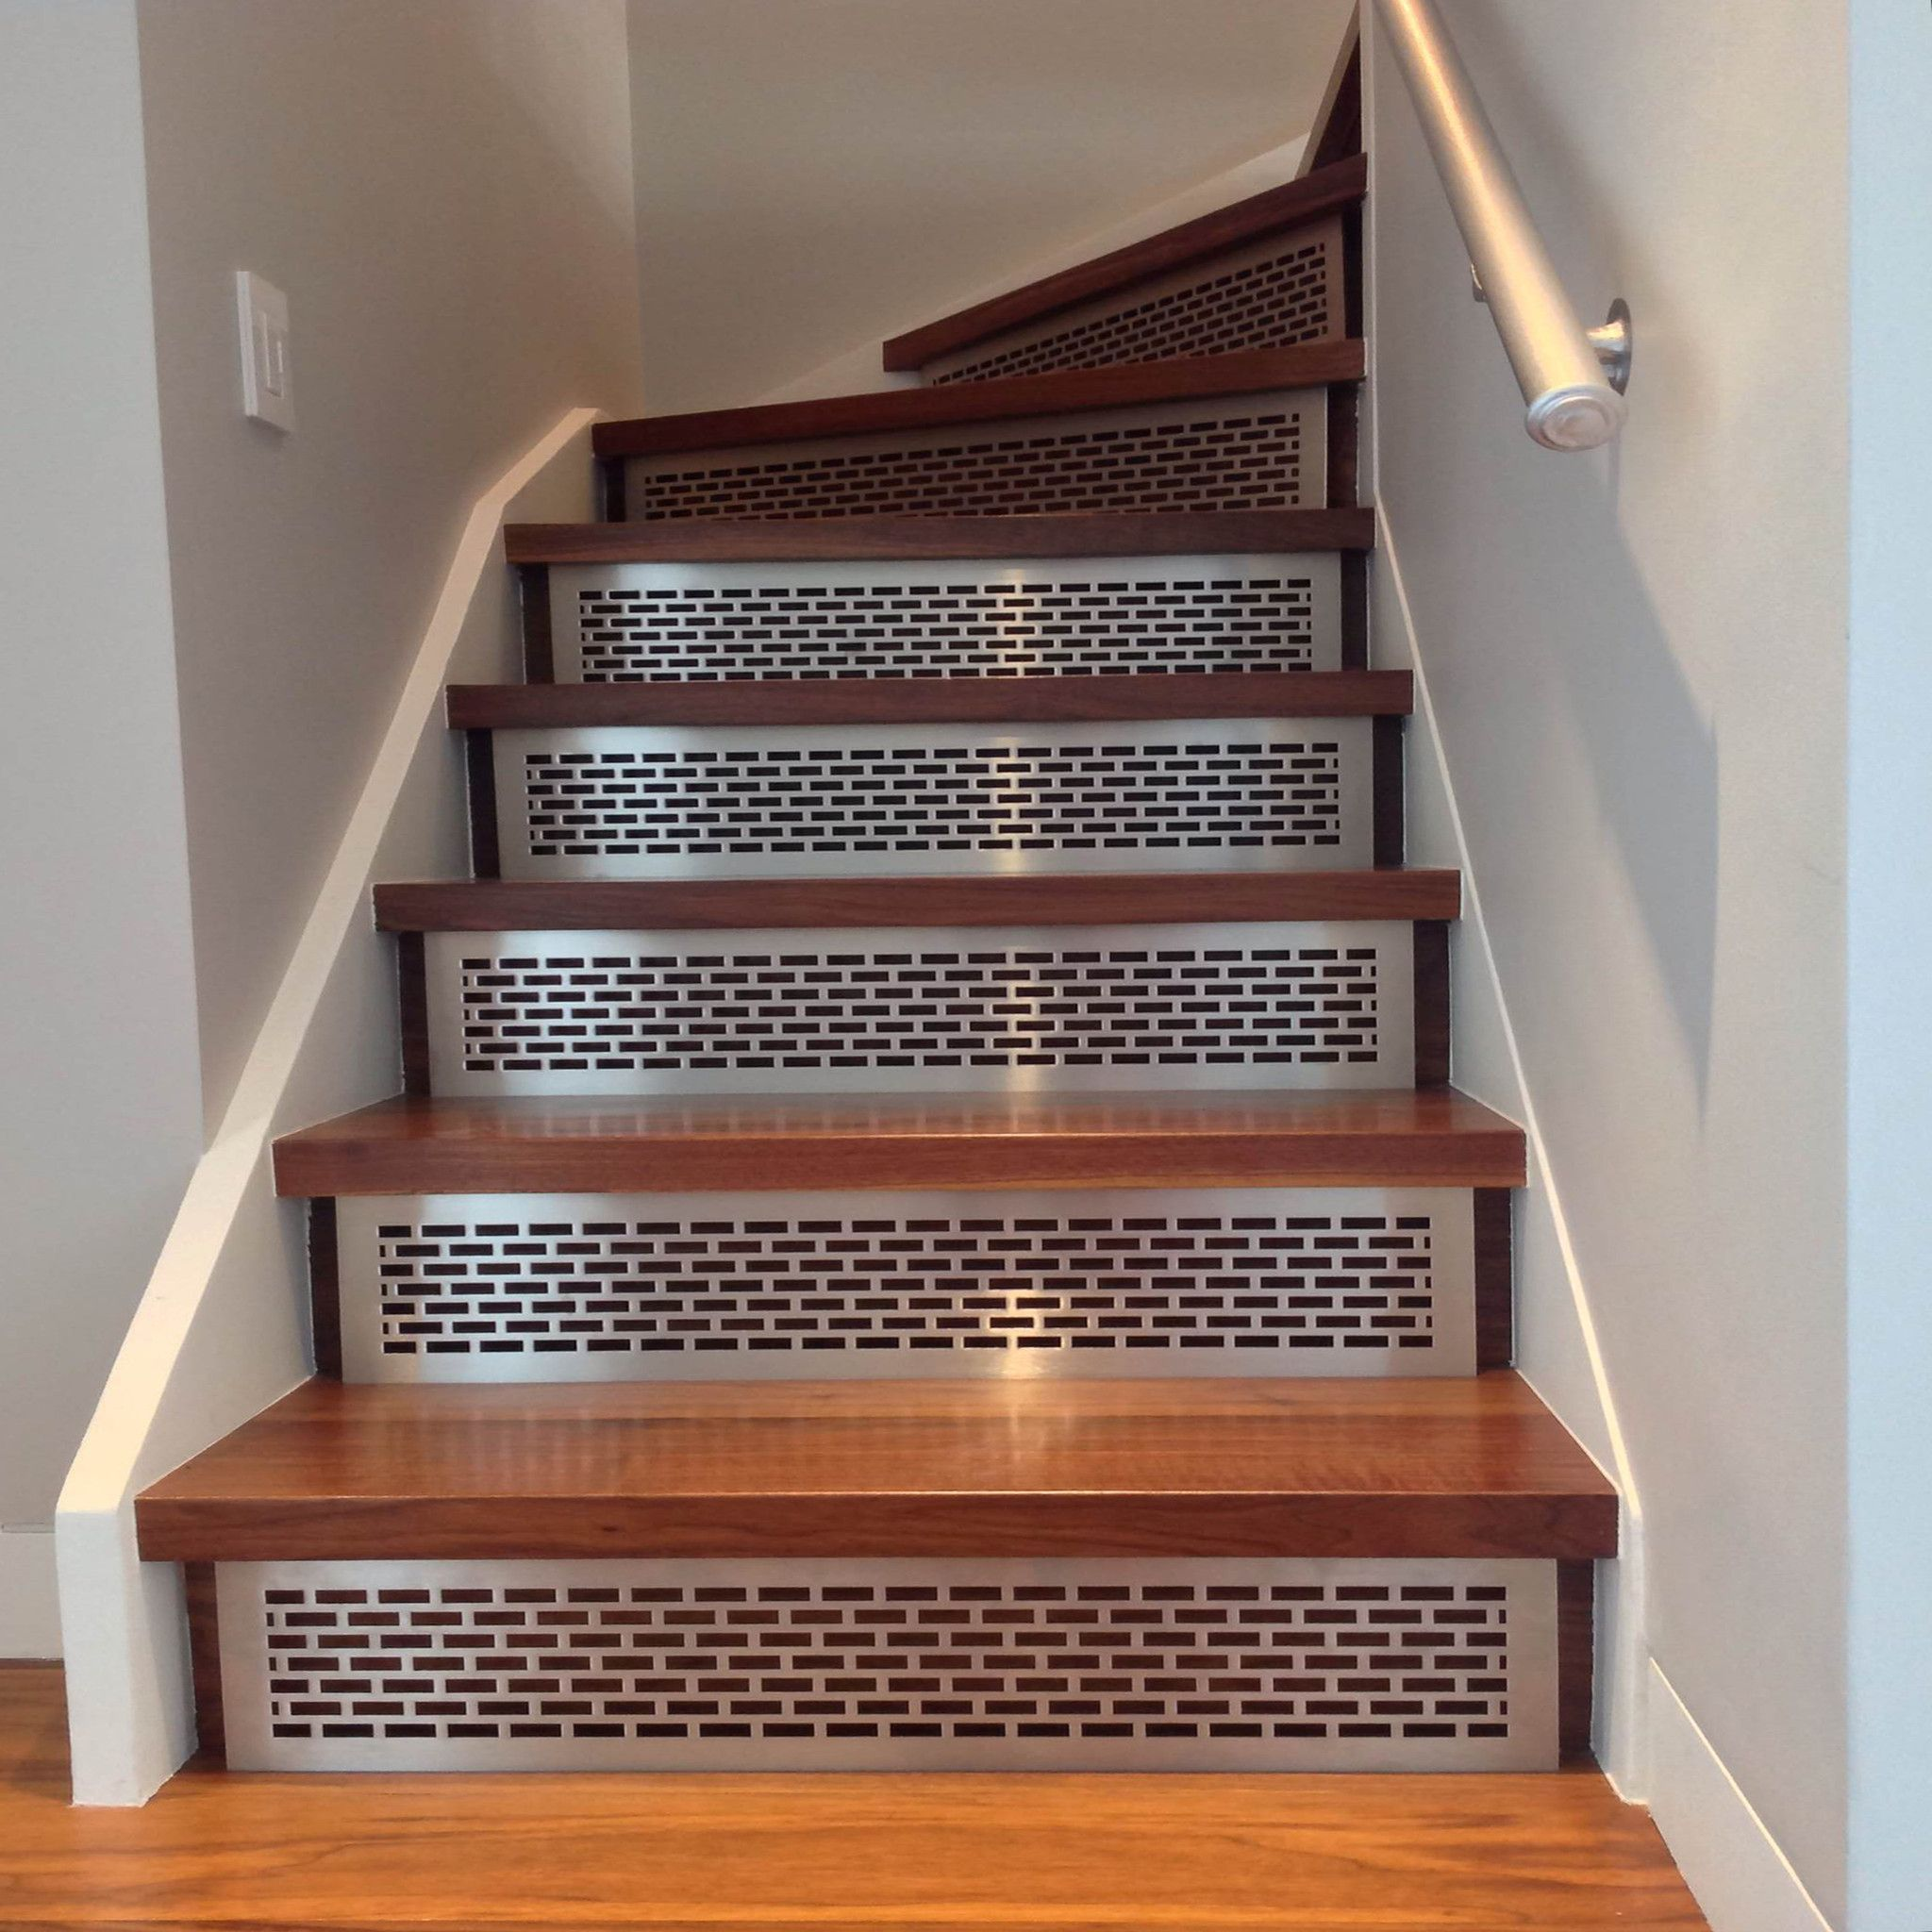 Stair Risers Treads Stairs Design Wood Stair Treads Hardwood | Best Wood For Stair Stringers | Primer | Stair Railing | Deck | Porch | Deck Stairs